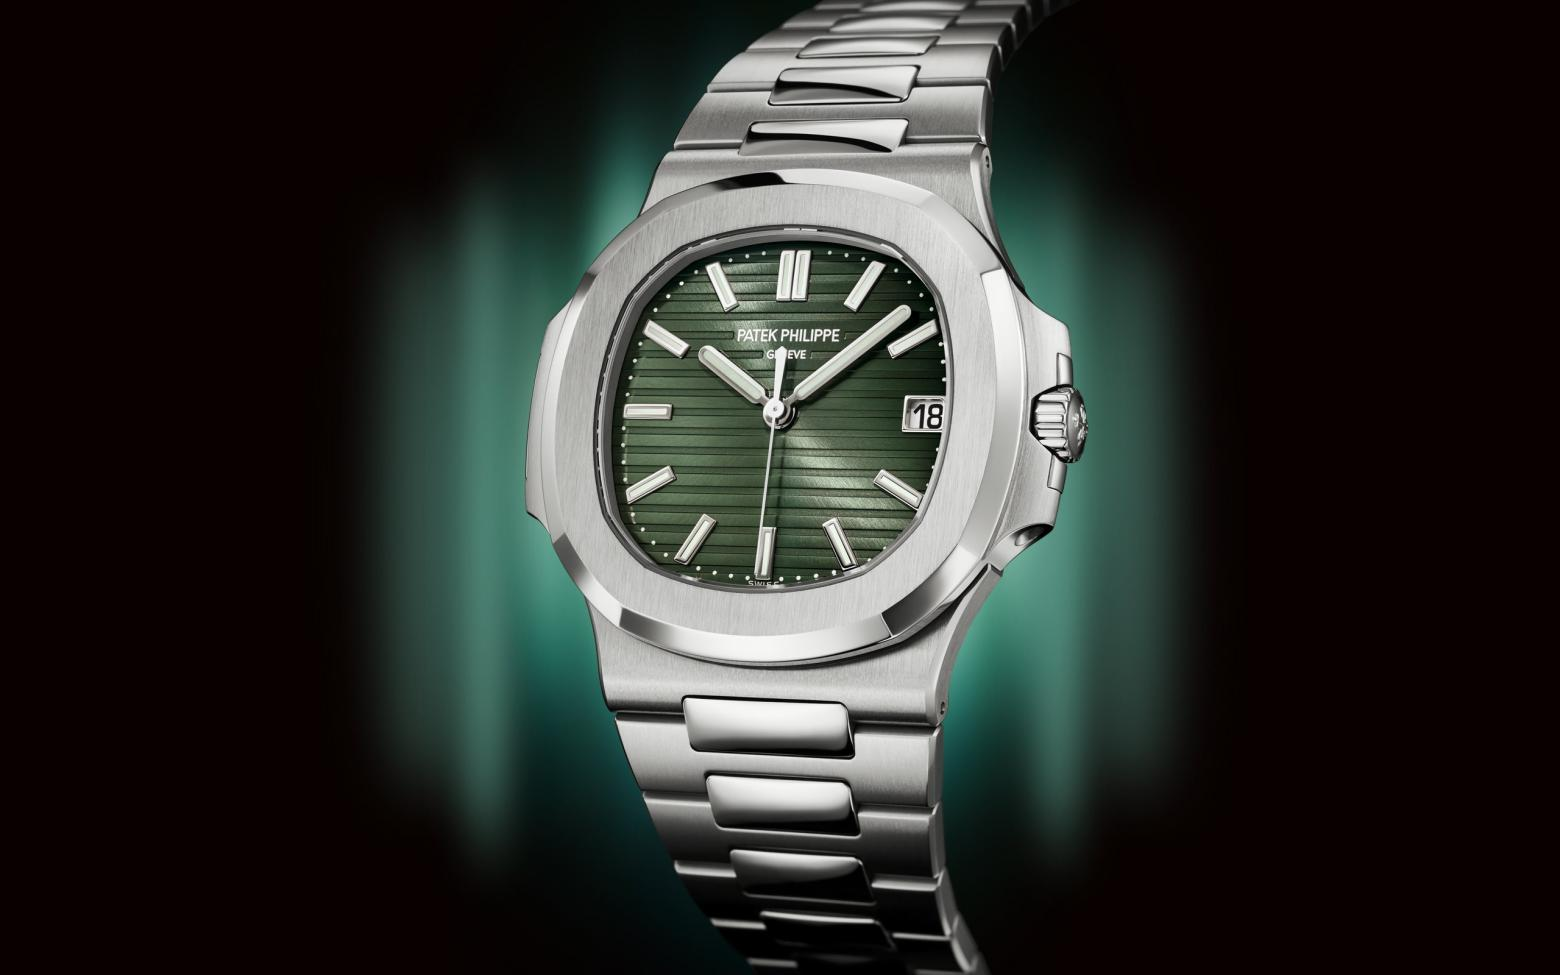 Patek Philippe Nautilus 5711: A Guide To One Of The Most Sought-After Luxury Sports Watch Today